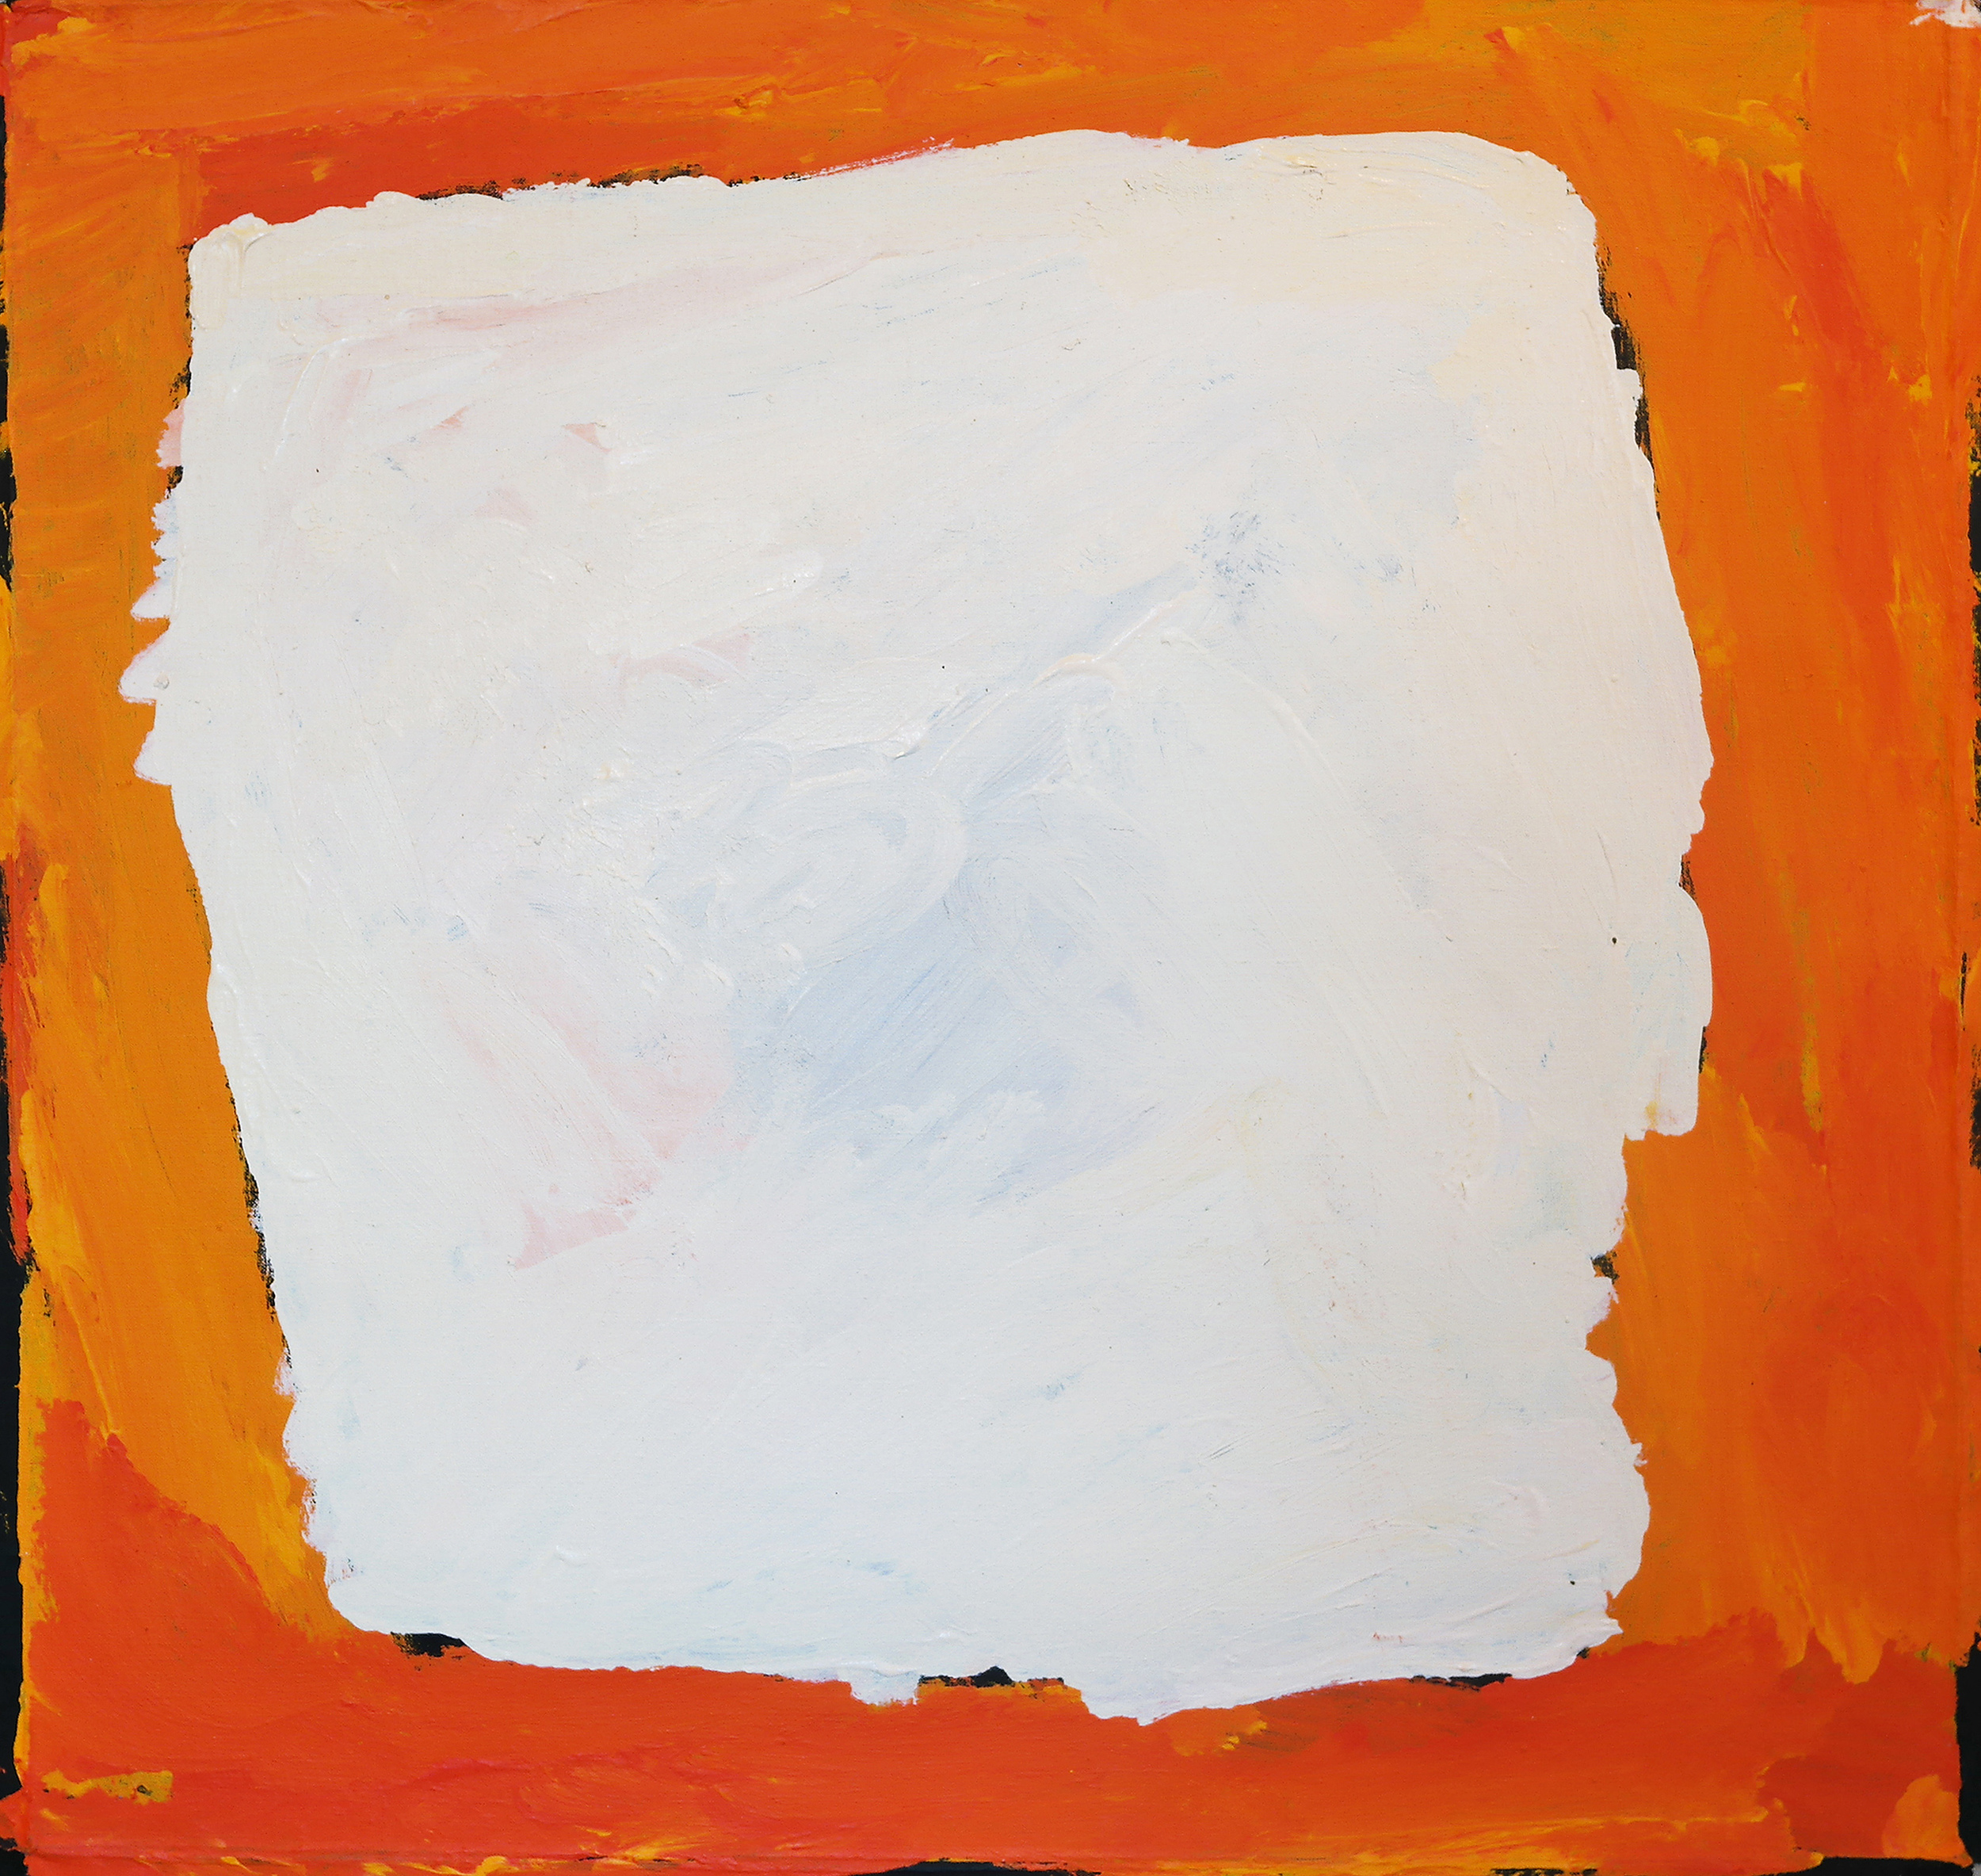 """Sandy Brumby  Victory Downs  Acrylic on Belgian linen 24"""" x 24"""" (61 x 61 cm) Catalog #14-010   Price Available upon Request"""